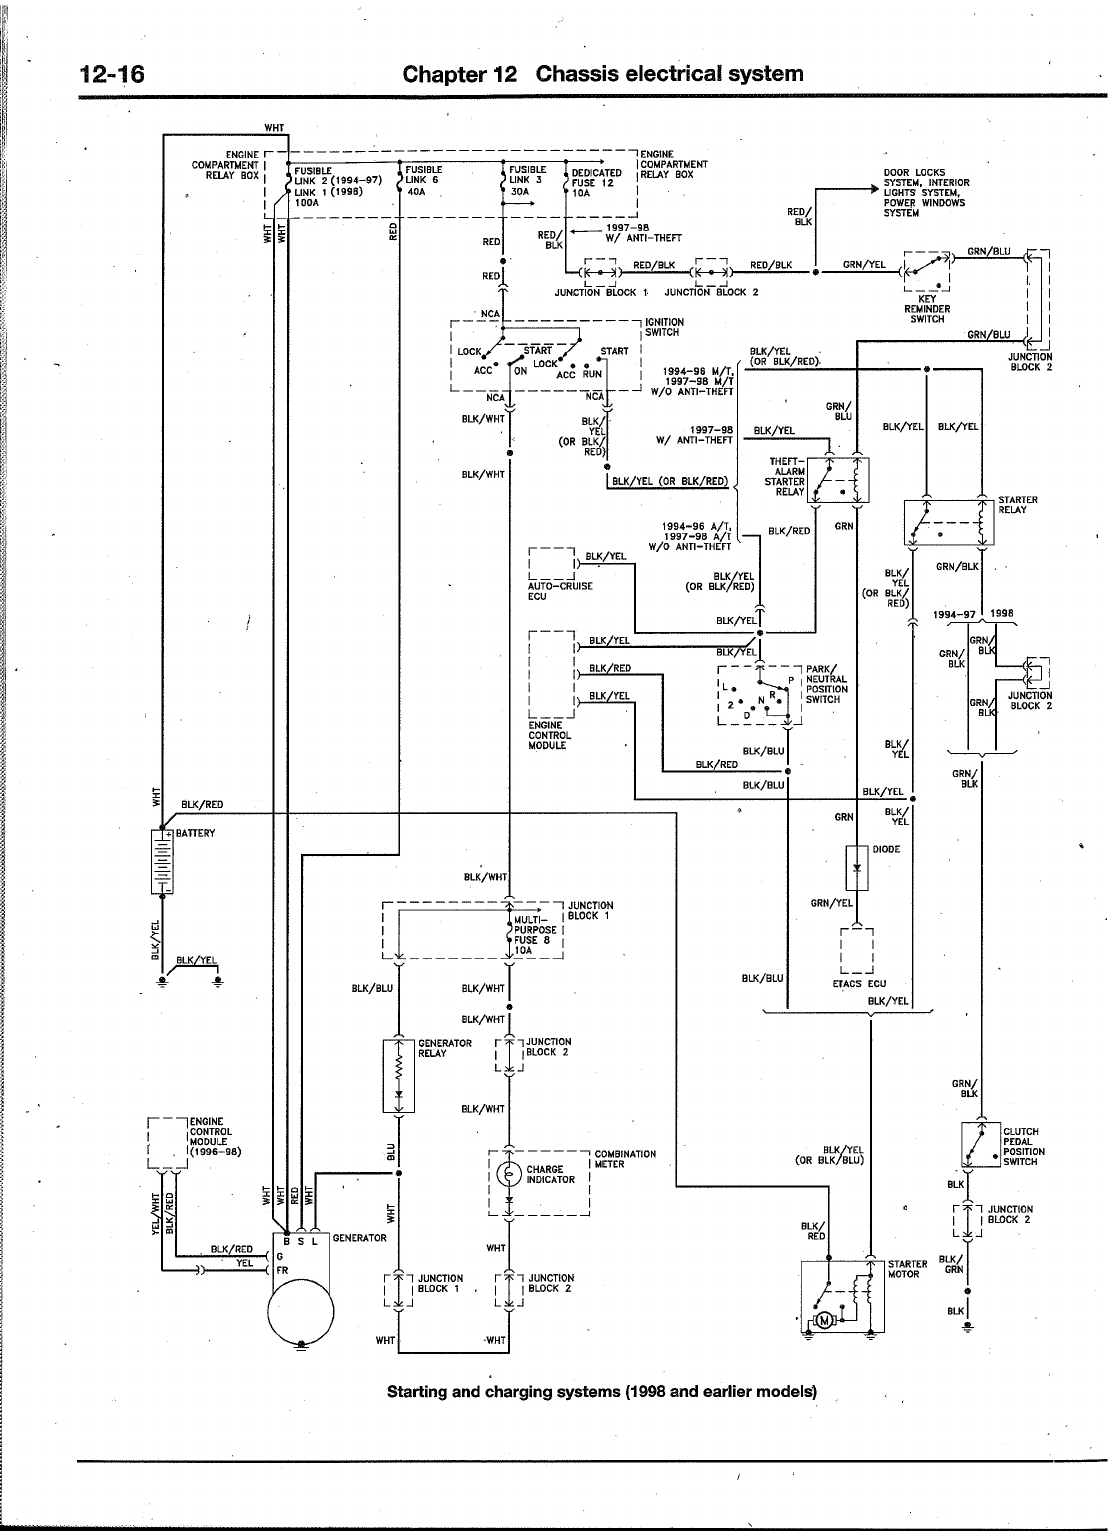 mitsubishi galant 1994 2003 misc document wiring diagram pdf rh manuals co mitsubishi wiring diagram l200 mitsubishi wiring diagram l200